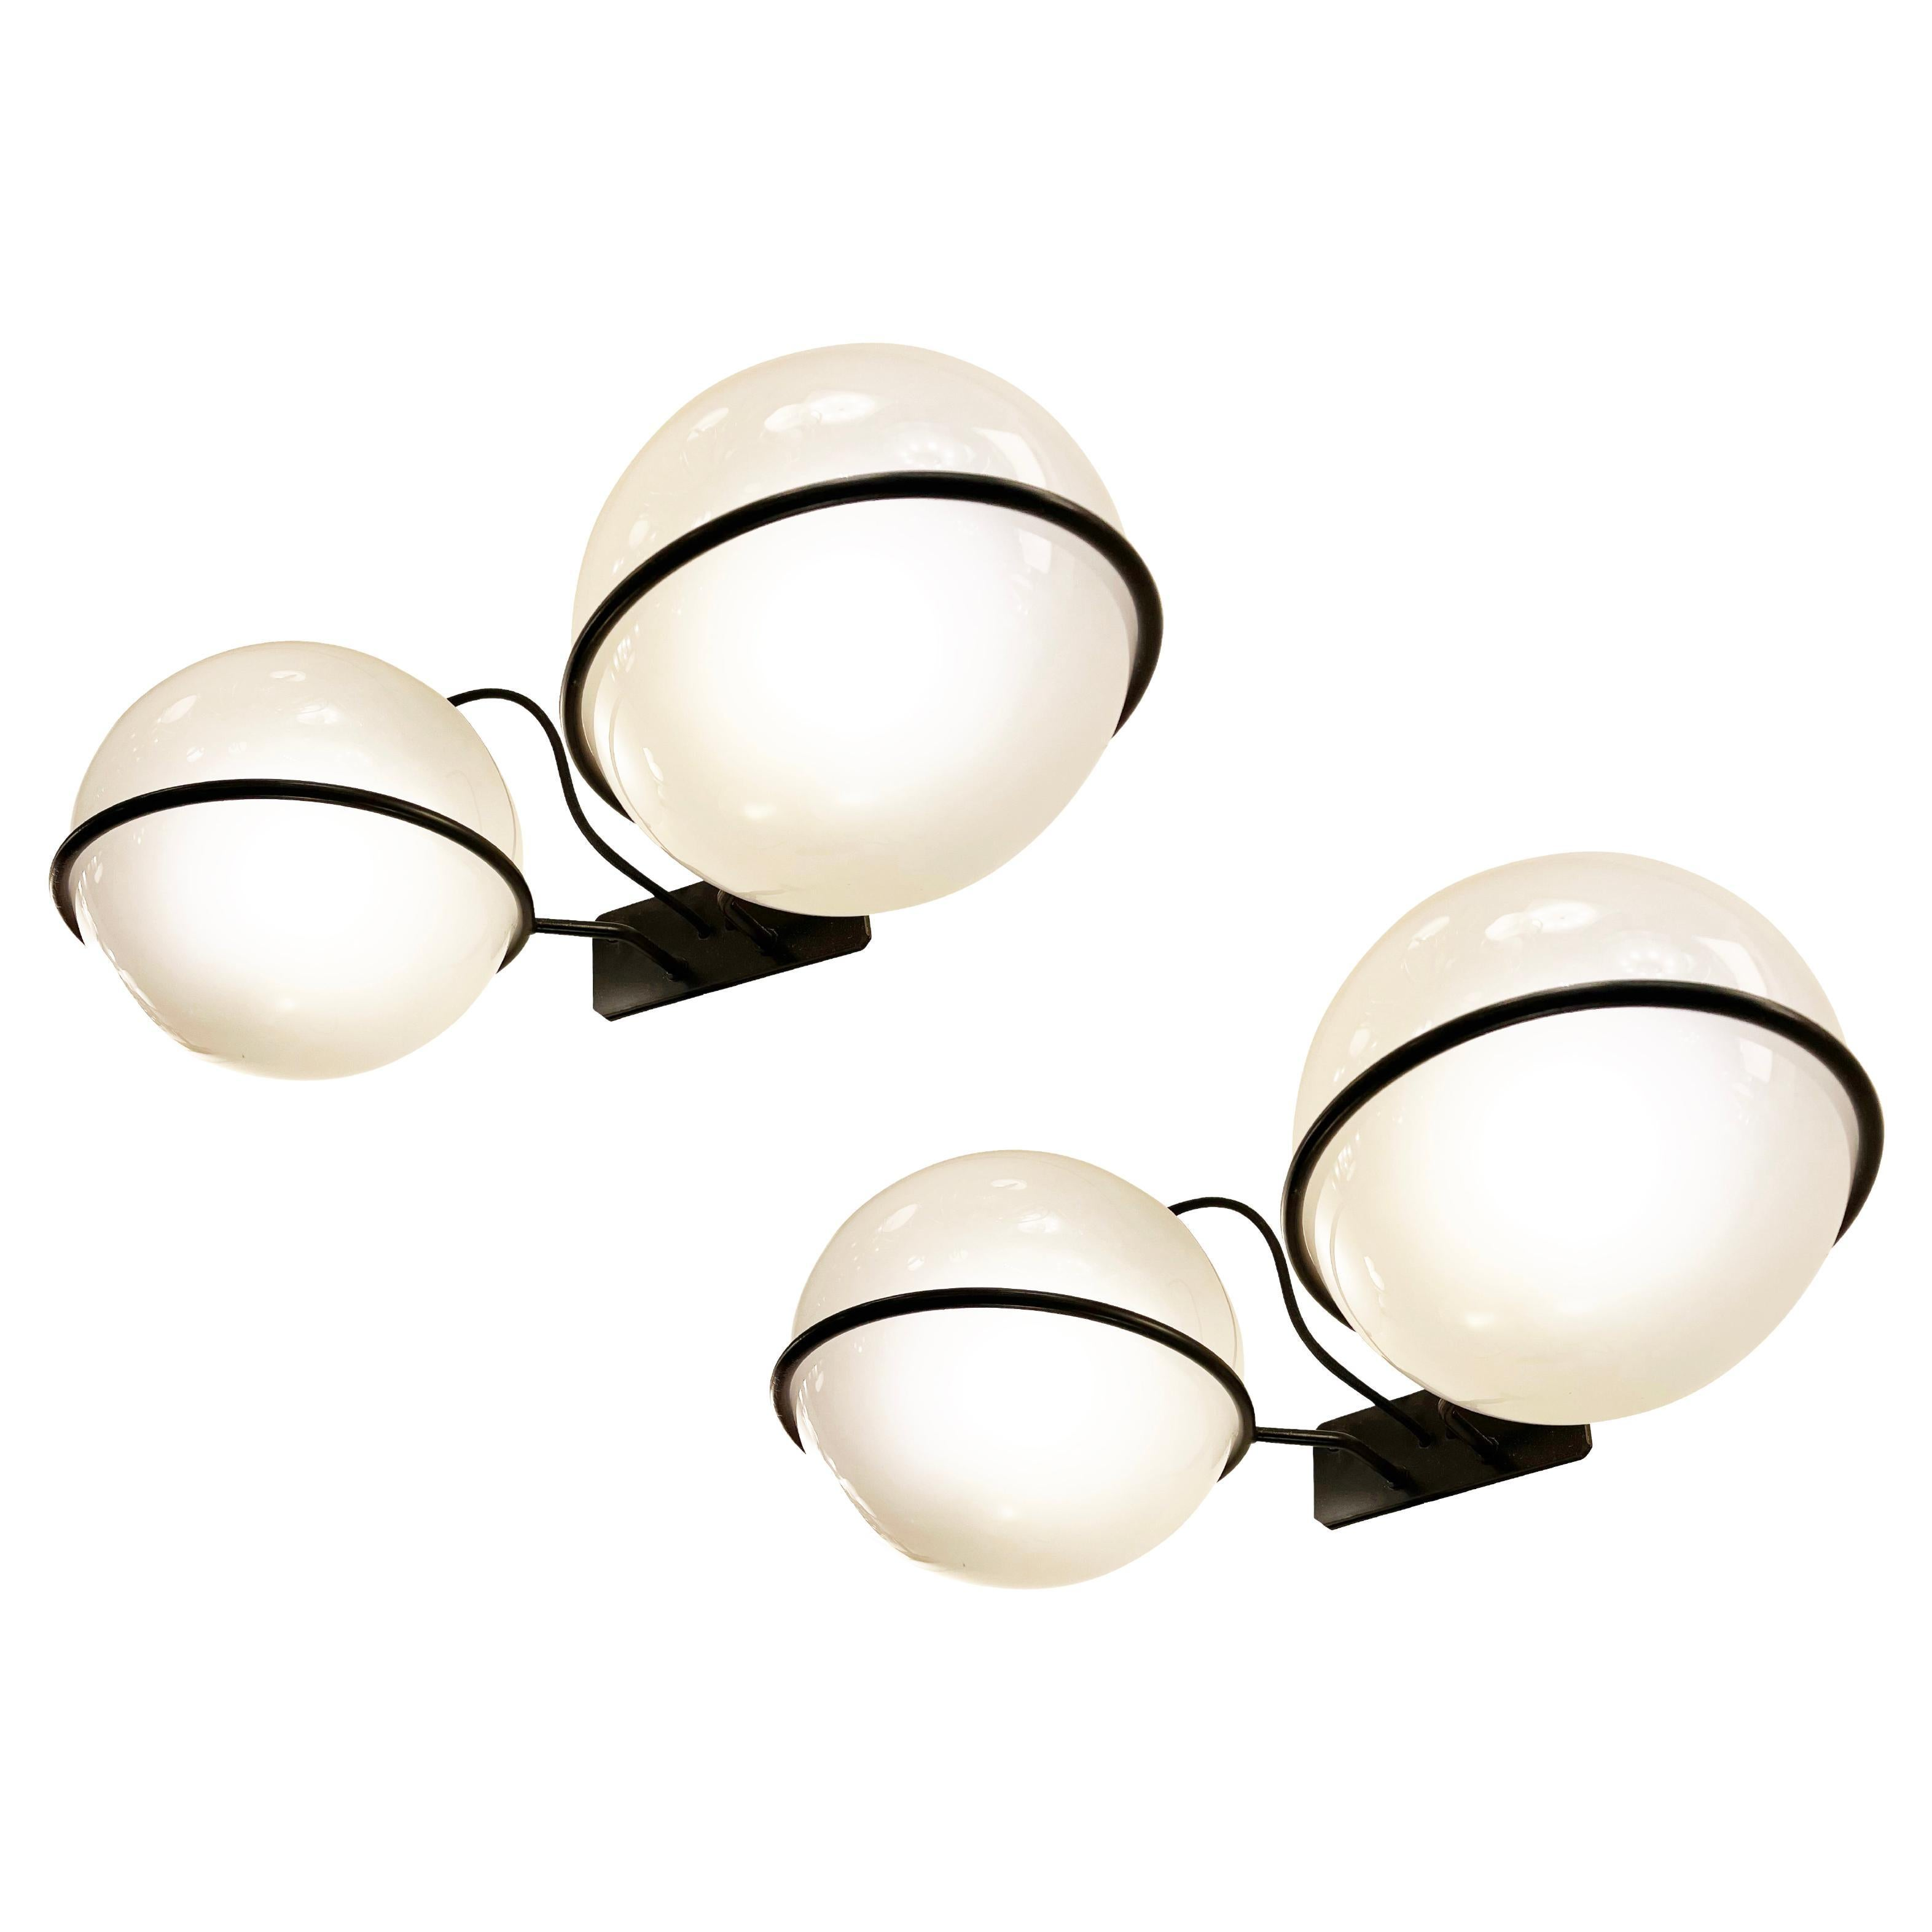 Pair of Large Sconces by Gino Sarfatti for Arteluce